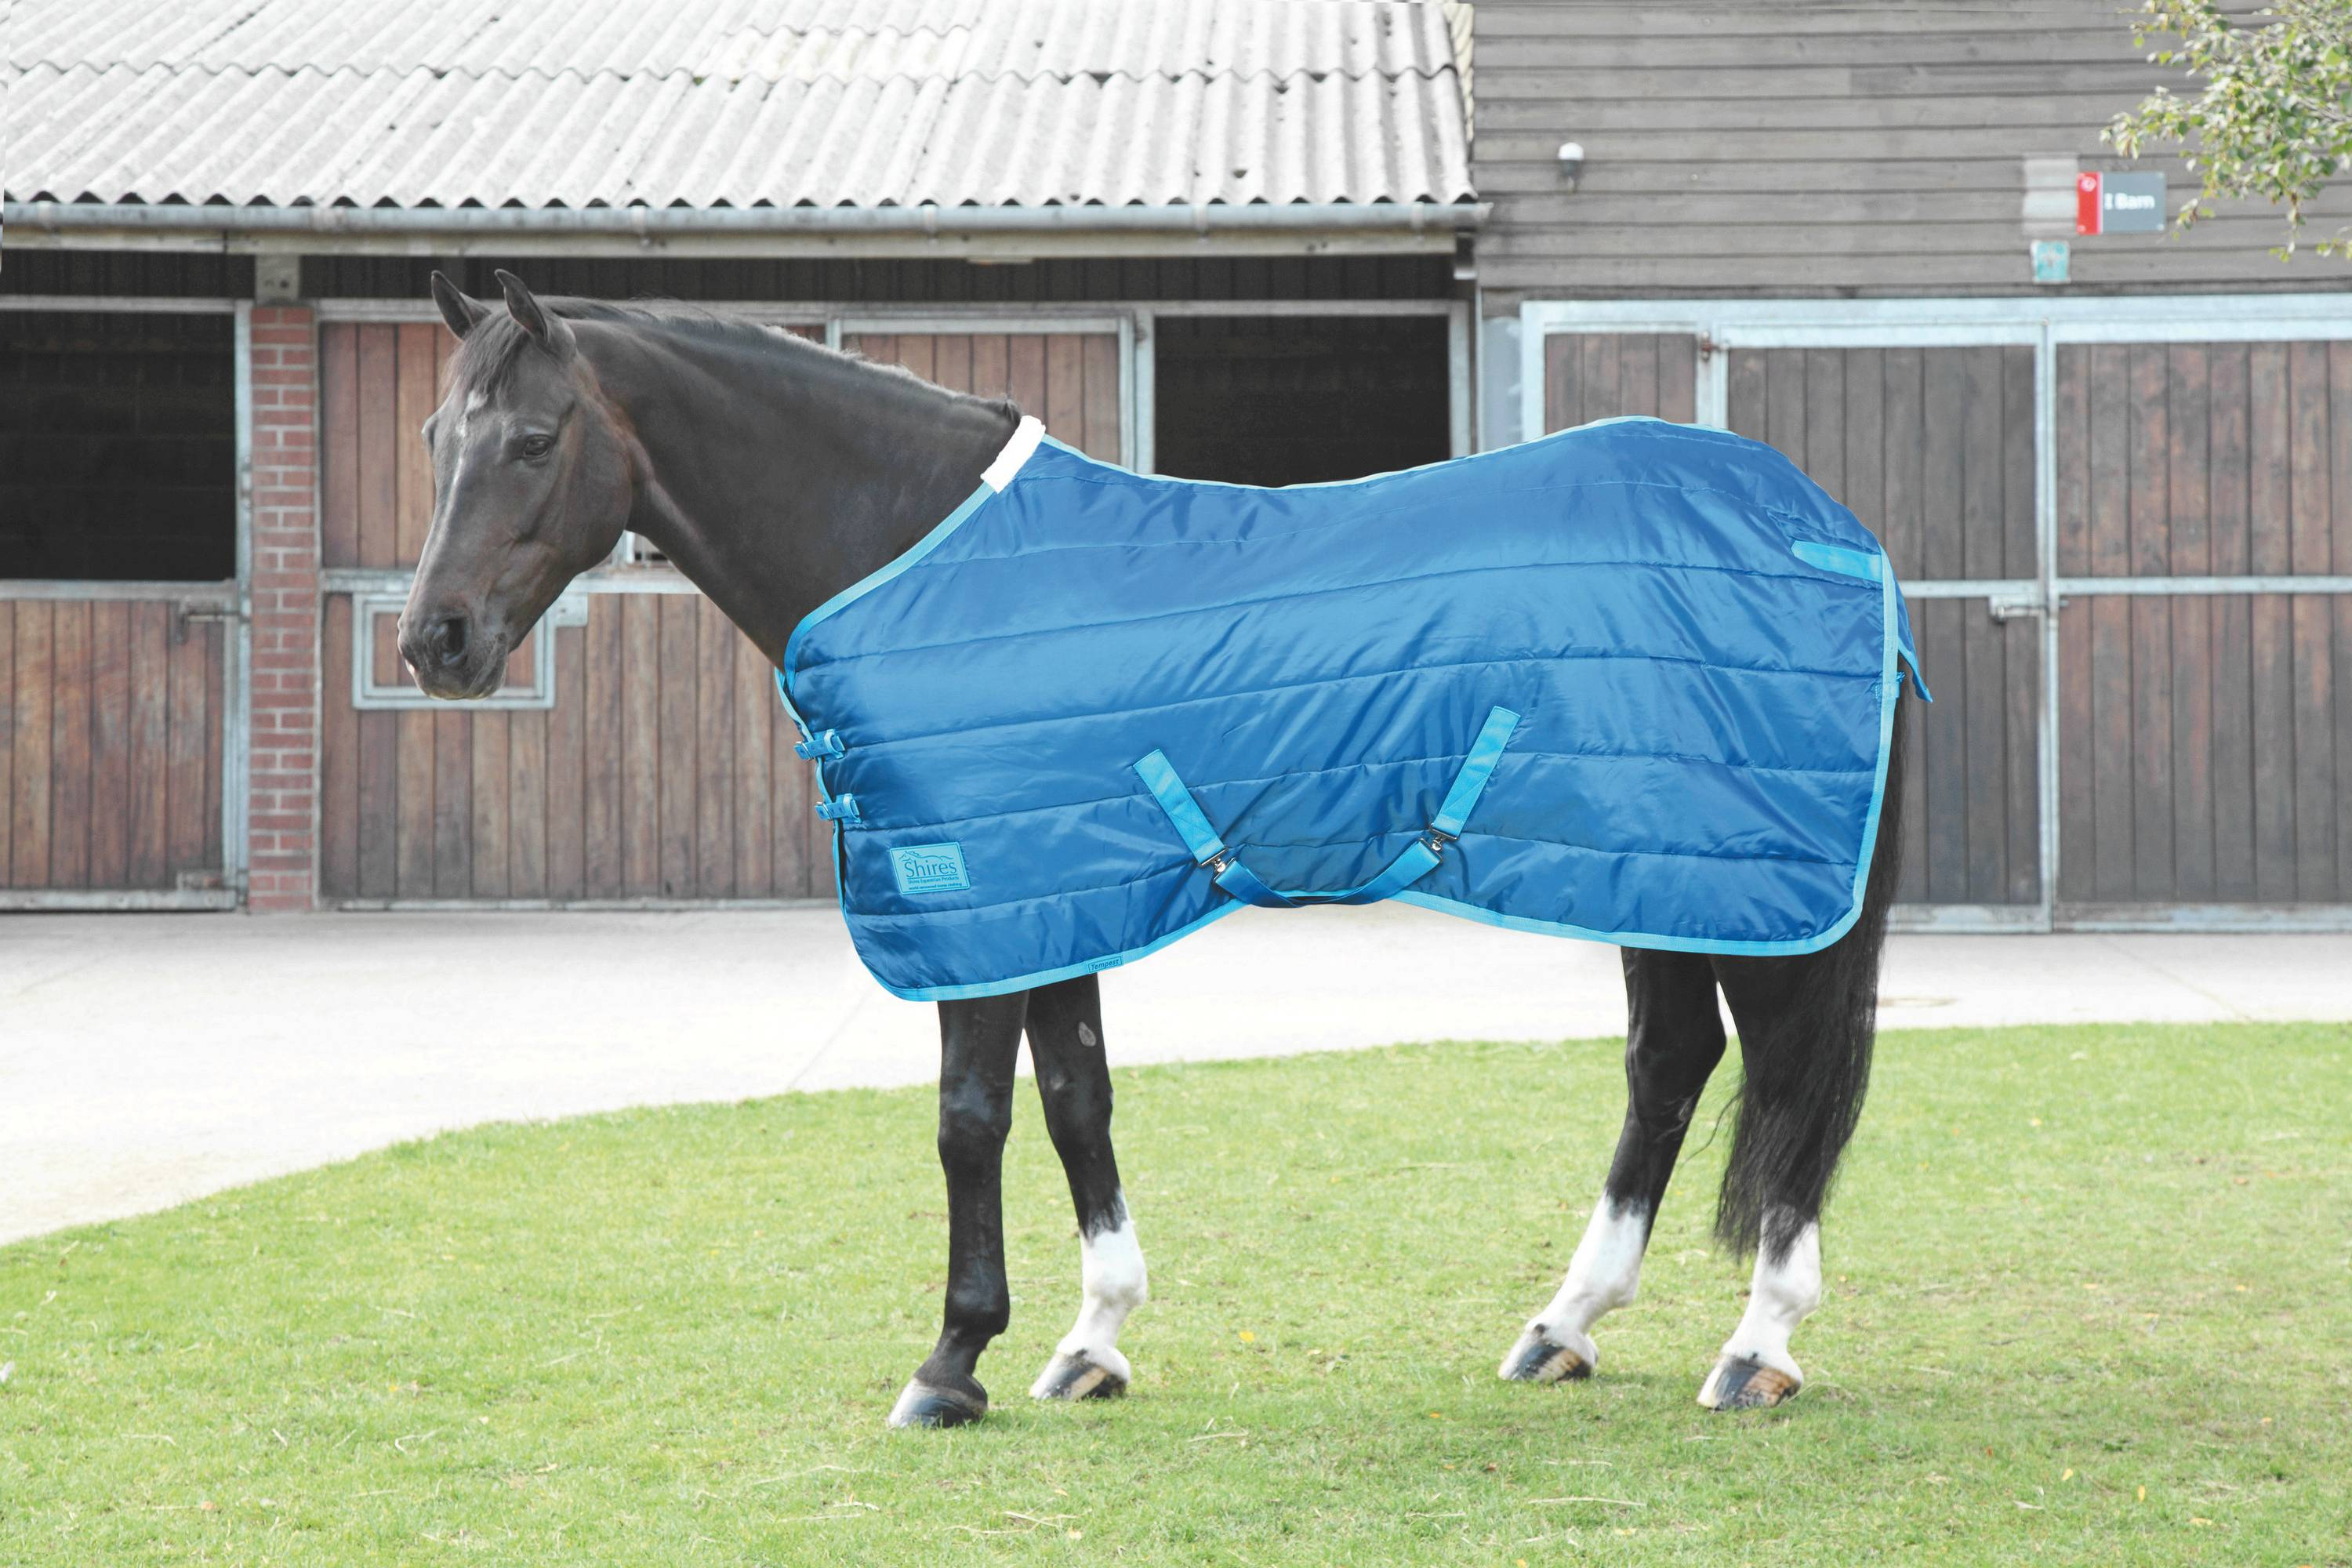 Shires Tempest 100 Lightweight Stable Blanket